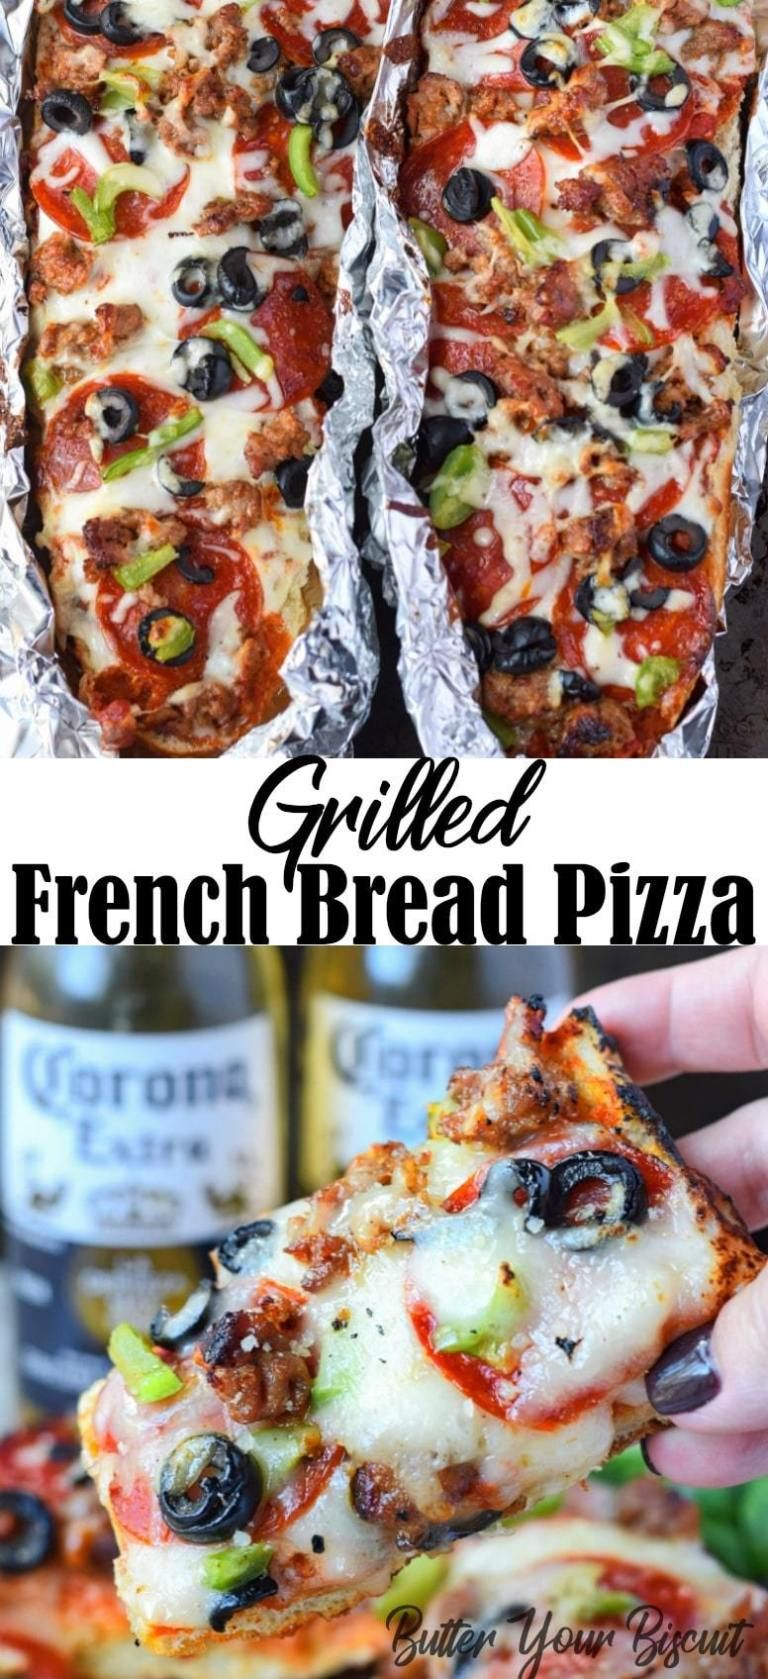 This Grilled french bread pizza recipe is loved by both kids and adults. Loaded with all your favorites and cooked to crisp cheesy perfection. #frenchbreadpizza #pizza #grilledpizza #grillingrecipes